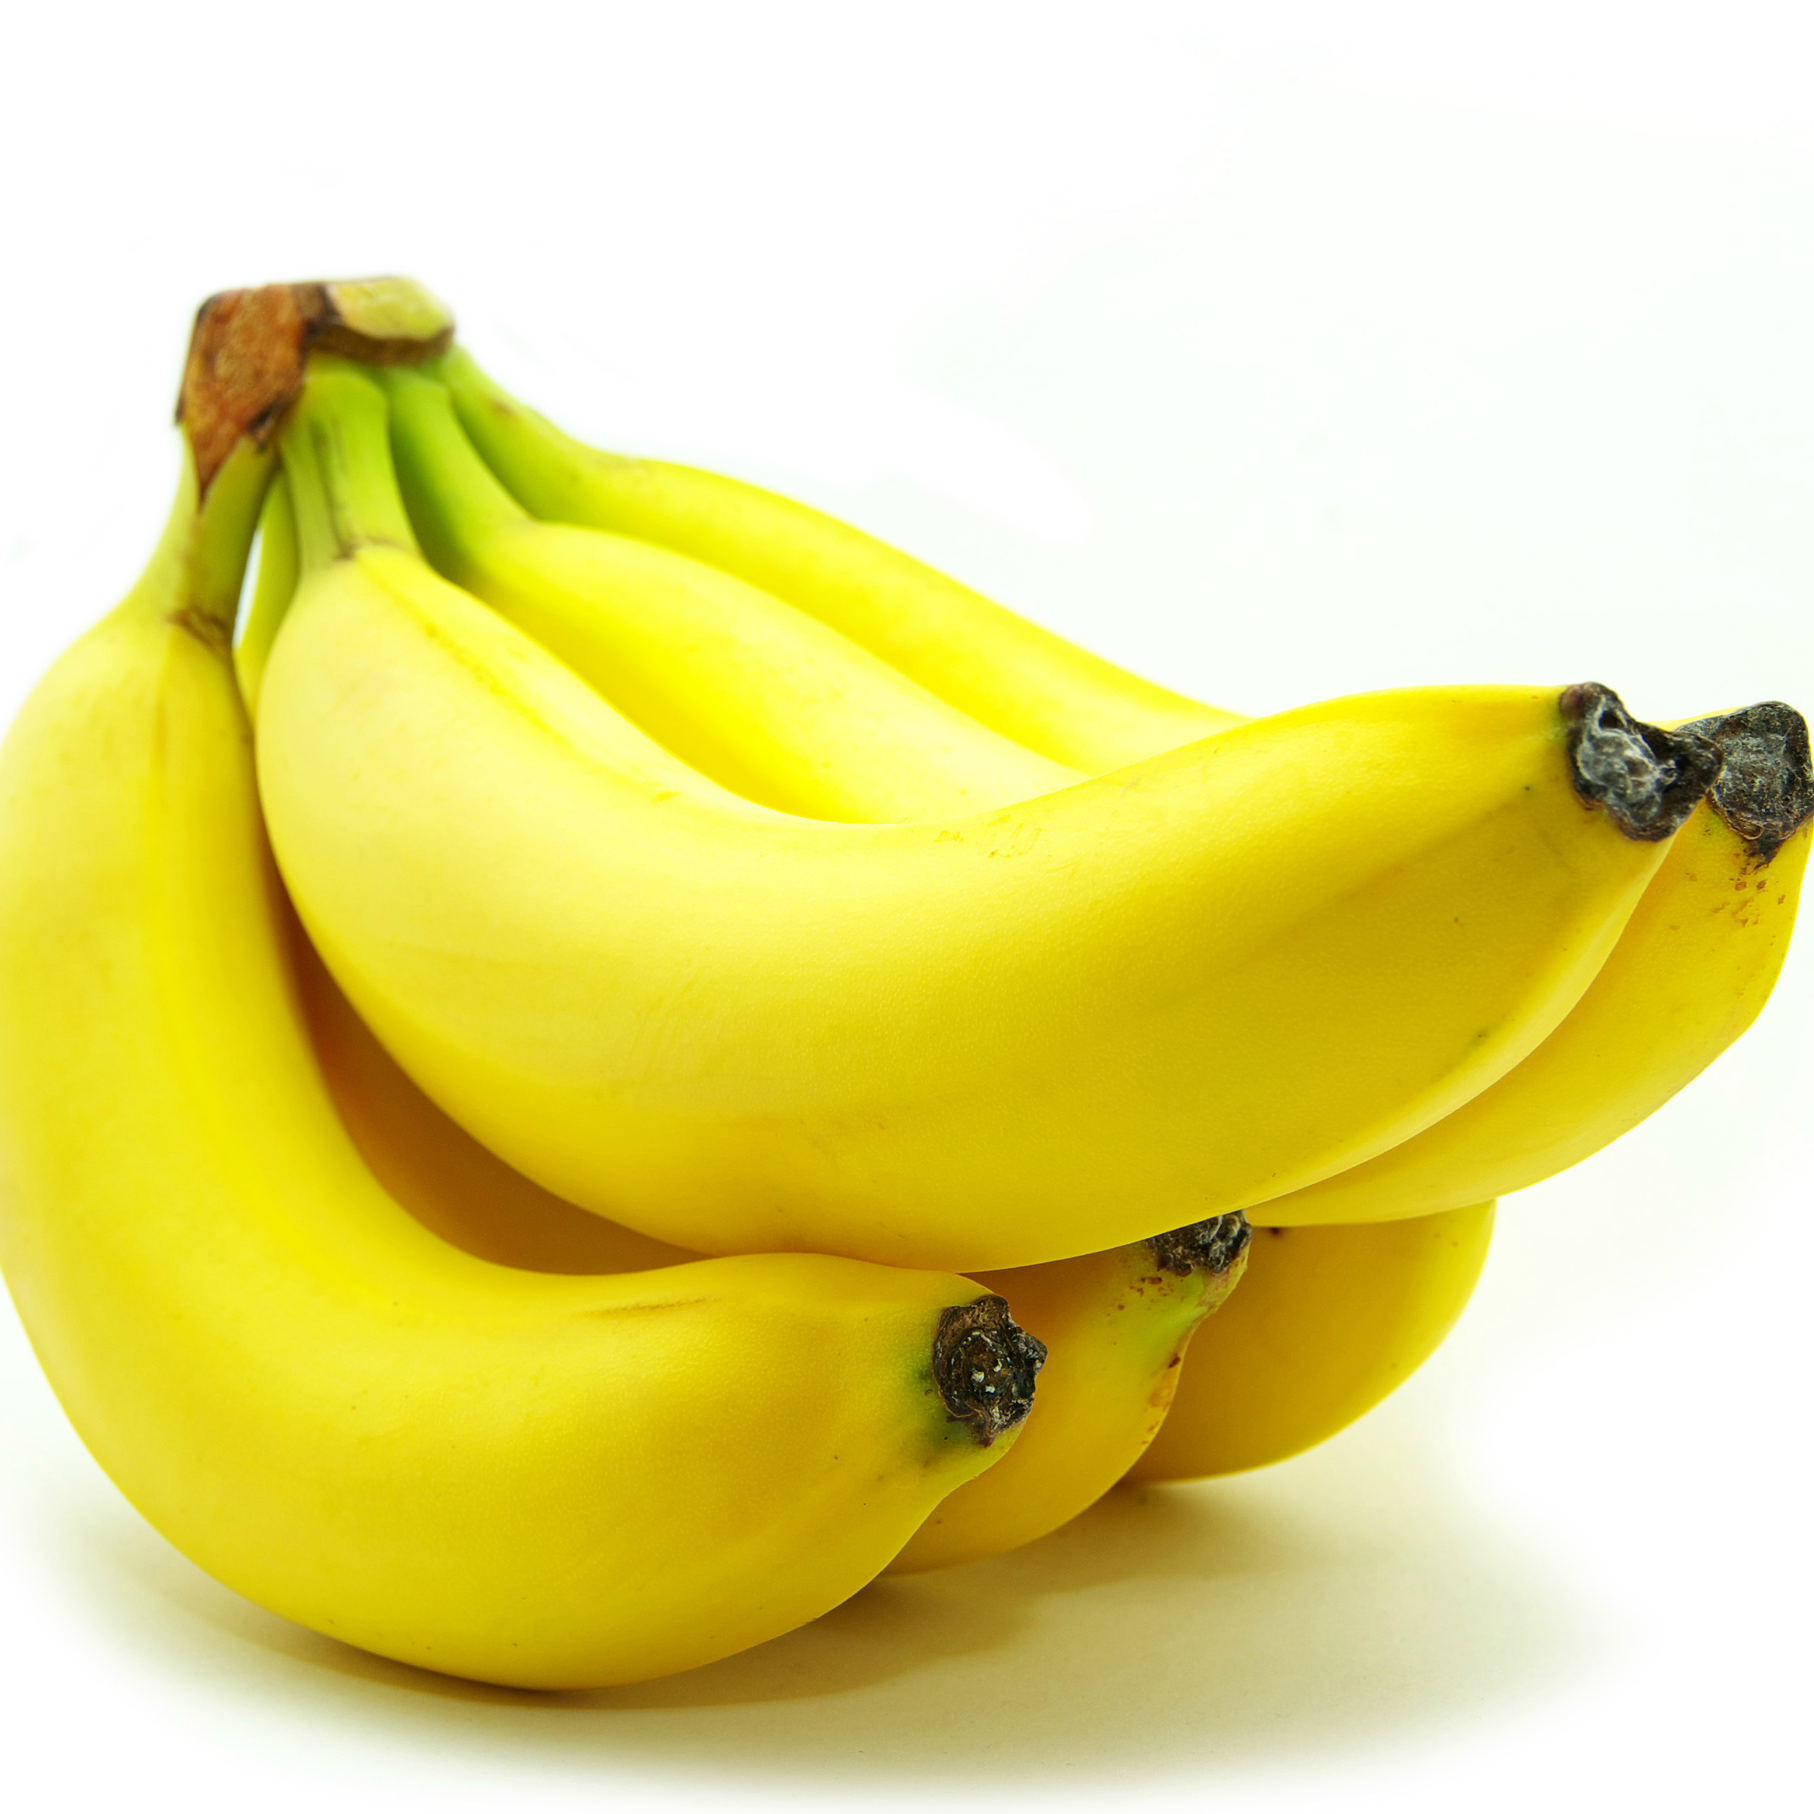 A bunch of yellow bananas that contain sleep-inducing amino acid tryptophan, which encourages relaxation.